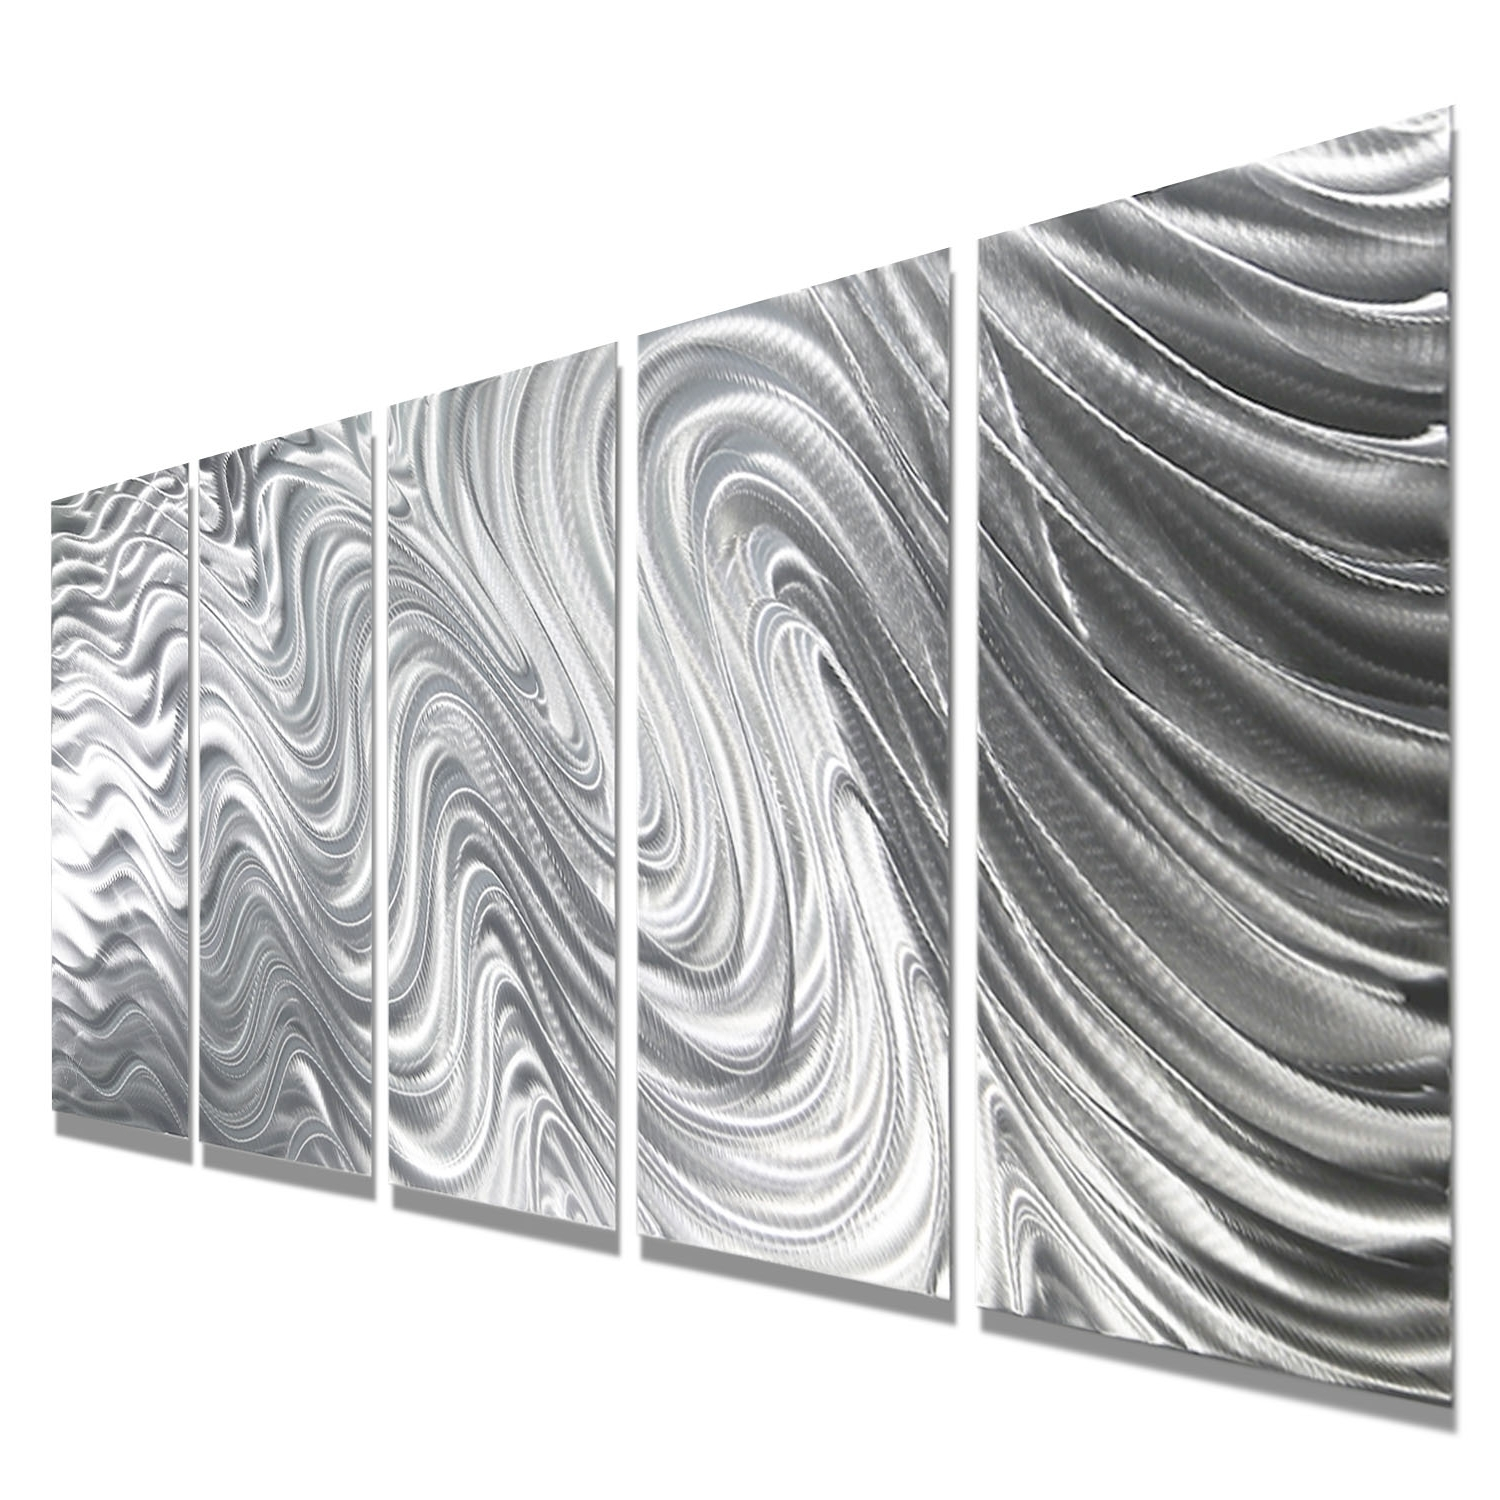 Most Popular Mirage – Silver Metal Wall Art – 5 Panel Wall Décorjon Allen With Regard To Silver Metal Wall Art (View 8 of 15)